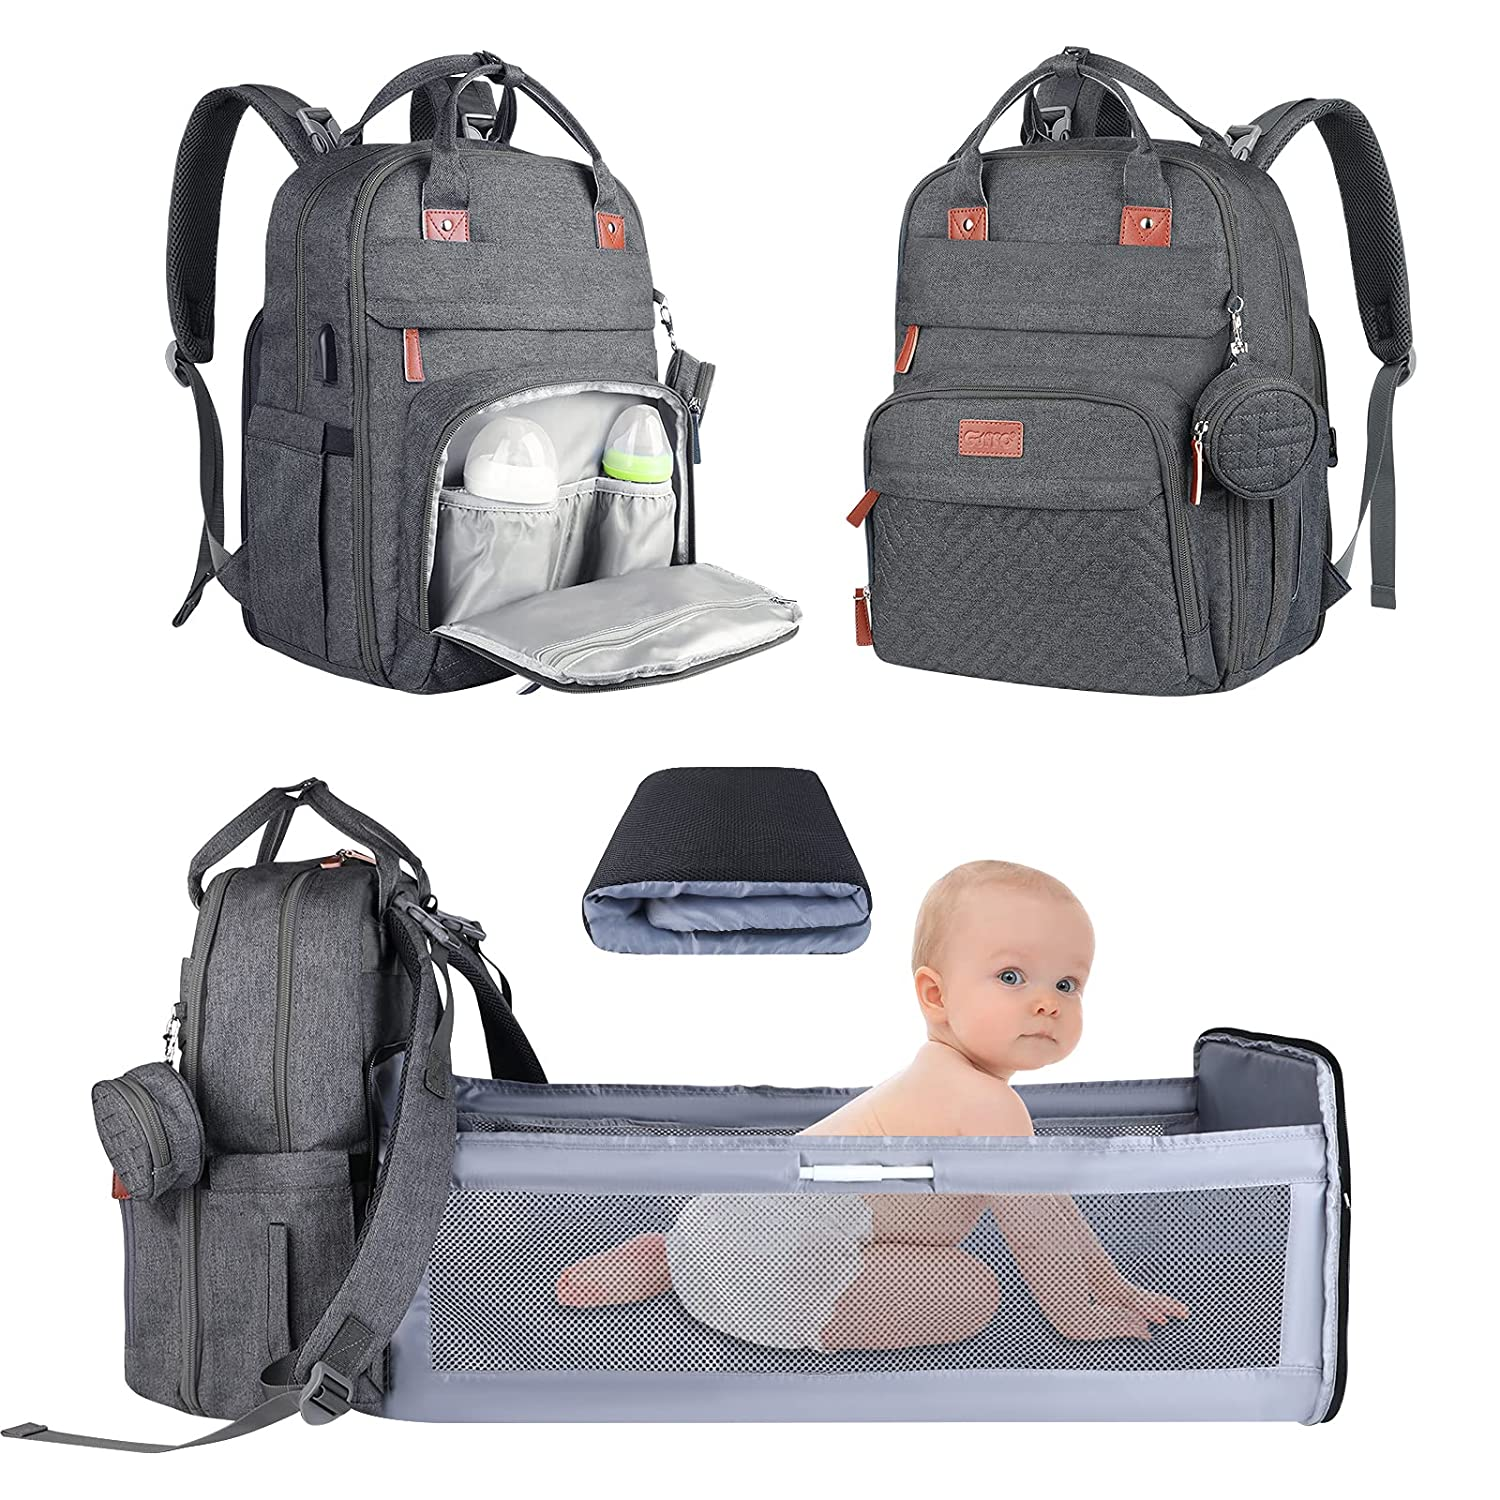 Diaper Bag Backpack,3 in 1 Baby Diaper Bag with Changing Station,Travel Foldable Baby Bed,Multi-Function Large-Capacity Baby Bags for Girls and Boys